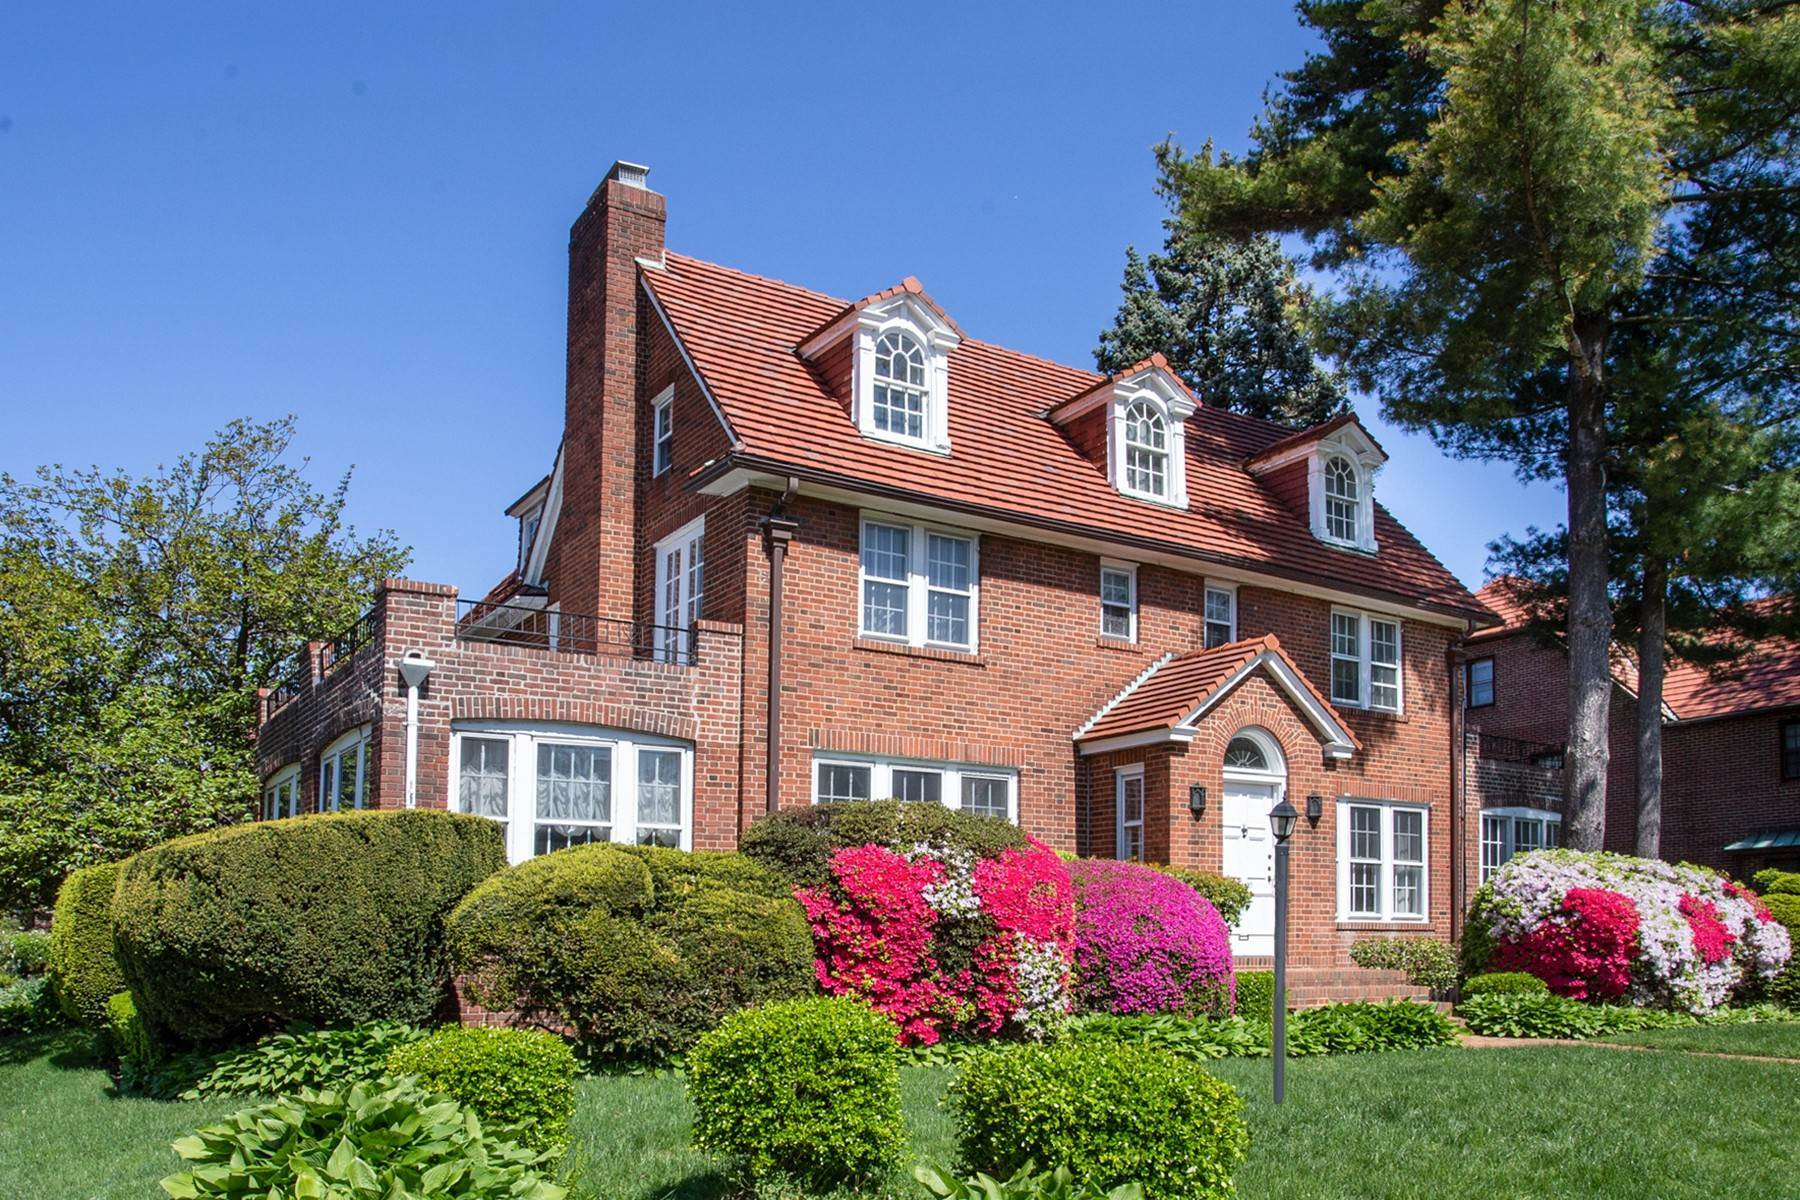 Single Family Homes por un Venta en 'STATELY GARDENS COLONIAL' 101-05 70th Avenue, Forest Hills Gardens, Forest Hills, Nueva York 11375 Estados Unidos